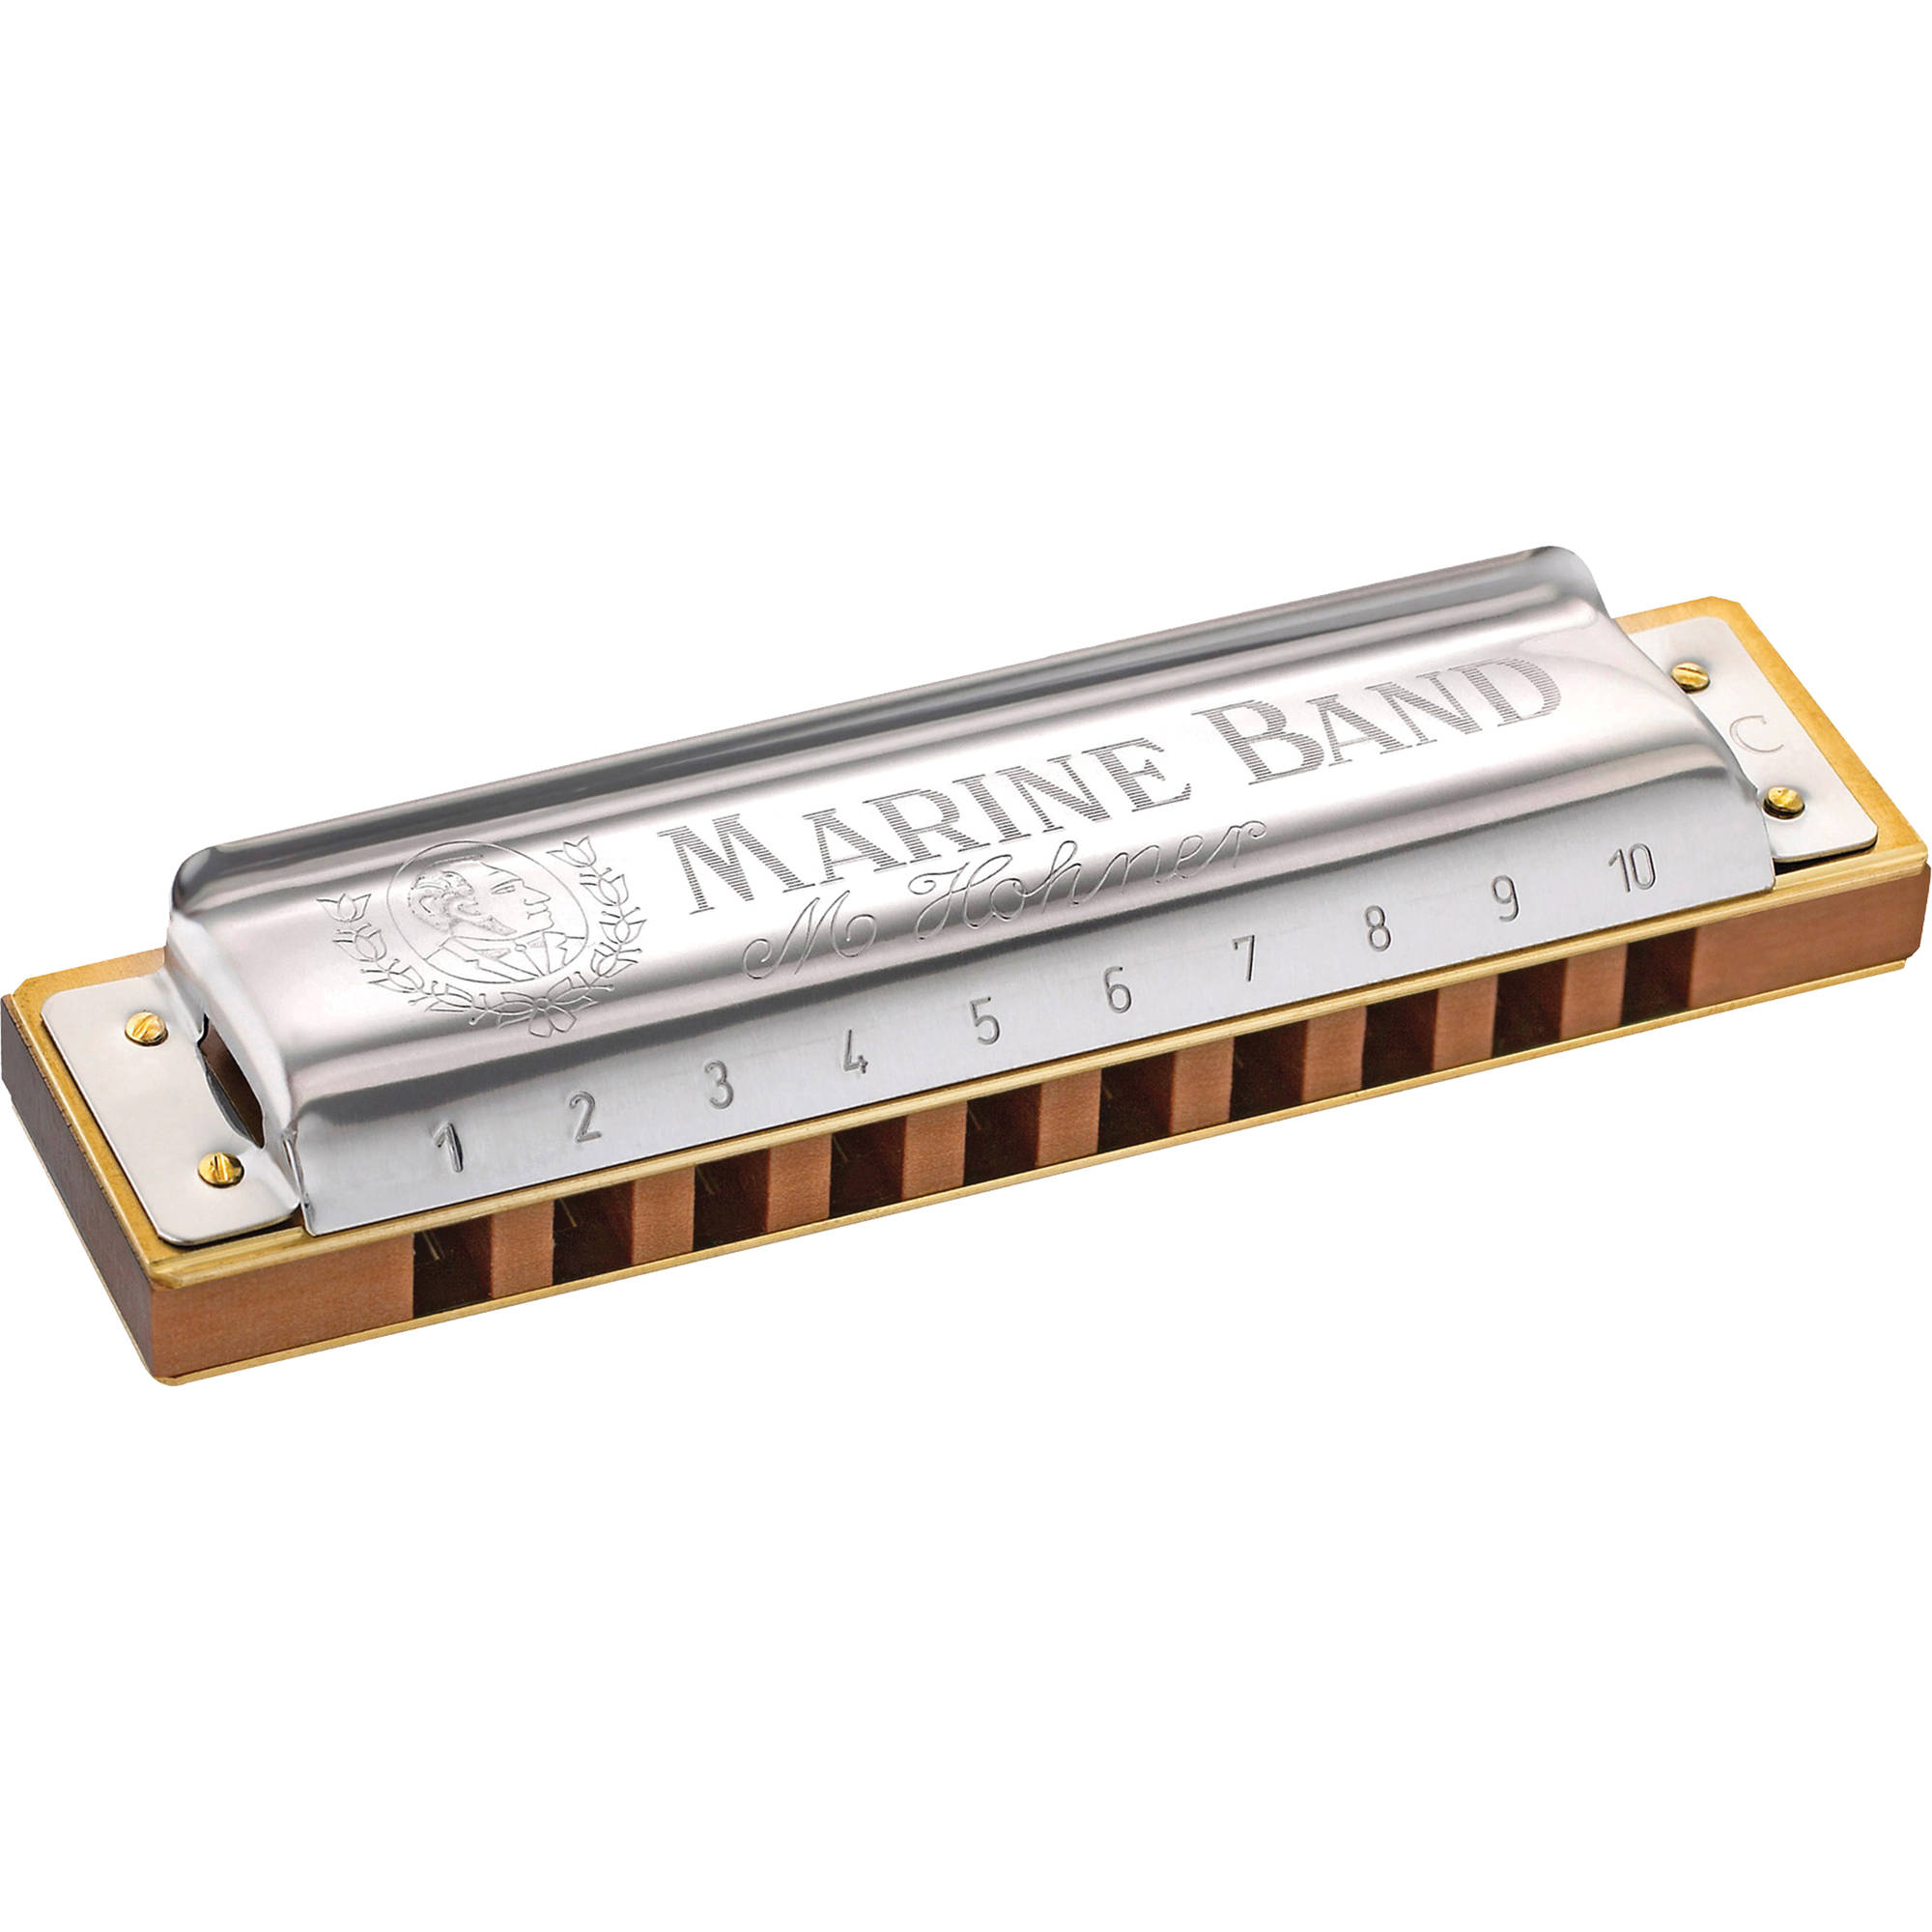 hohner hohner 1896 marine band harmonica with retail box mbc g. Black Bedroom Furniture Sets. Home Design Ideas